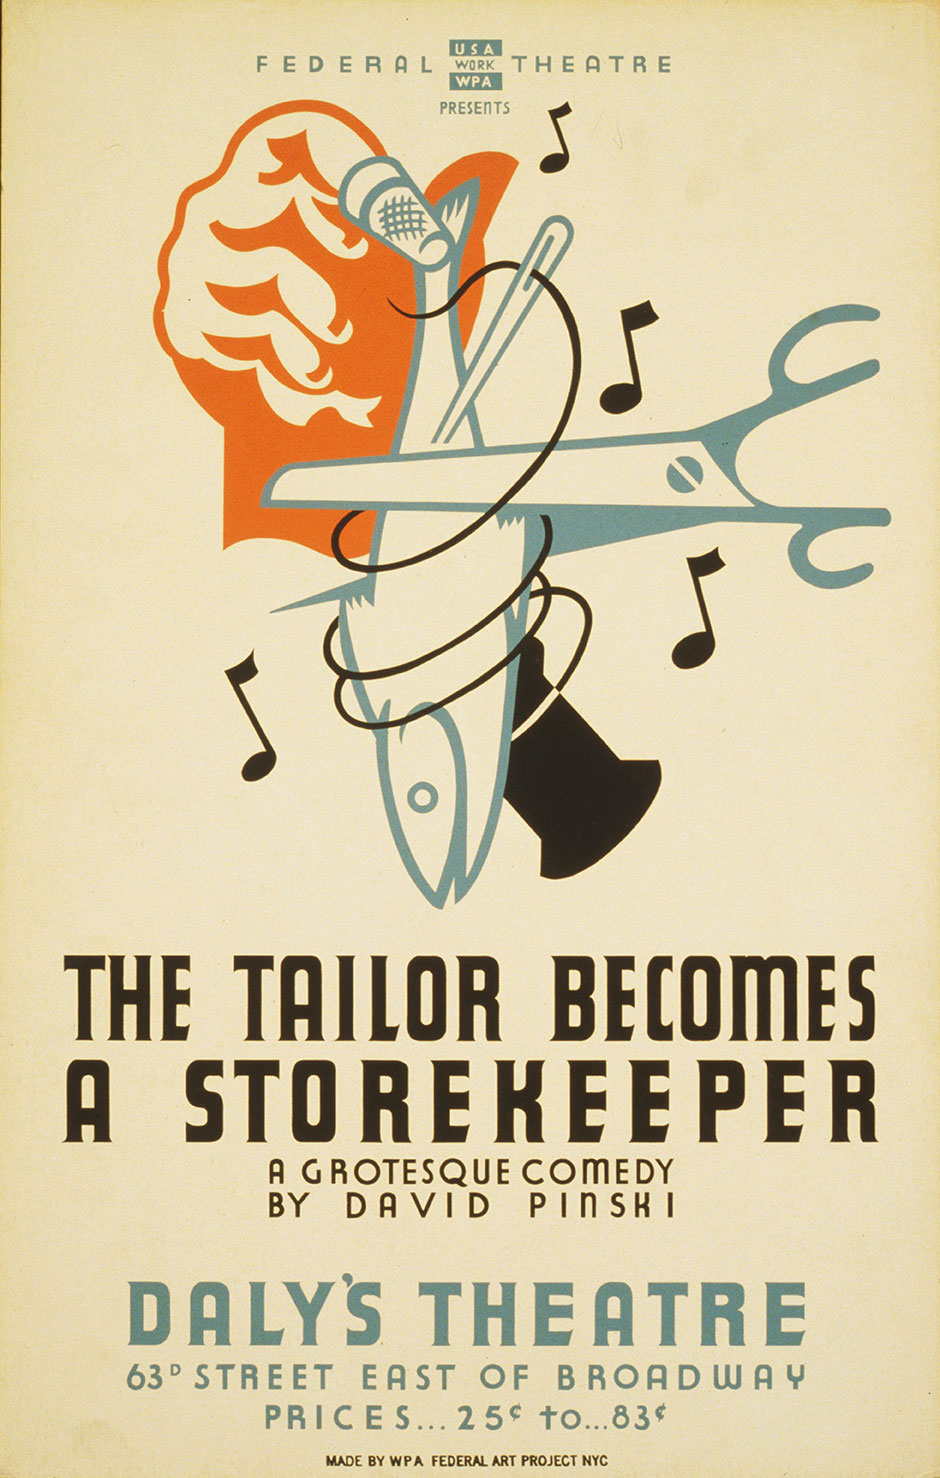 gdc-wpa-theatrical-posters-tailor.jpg